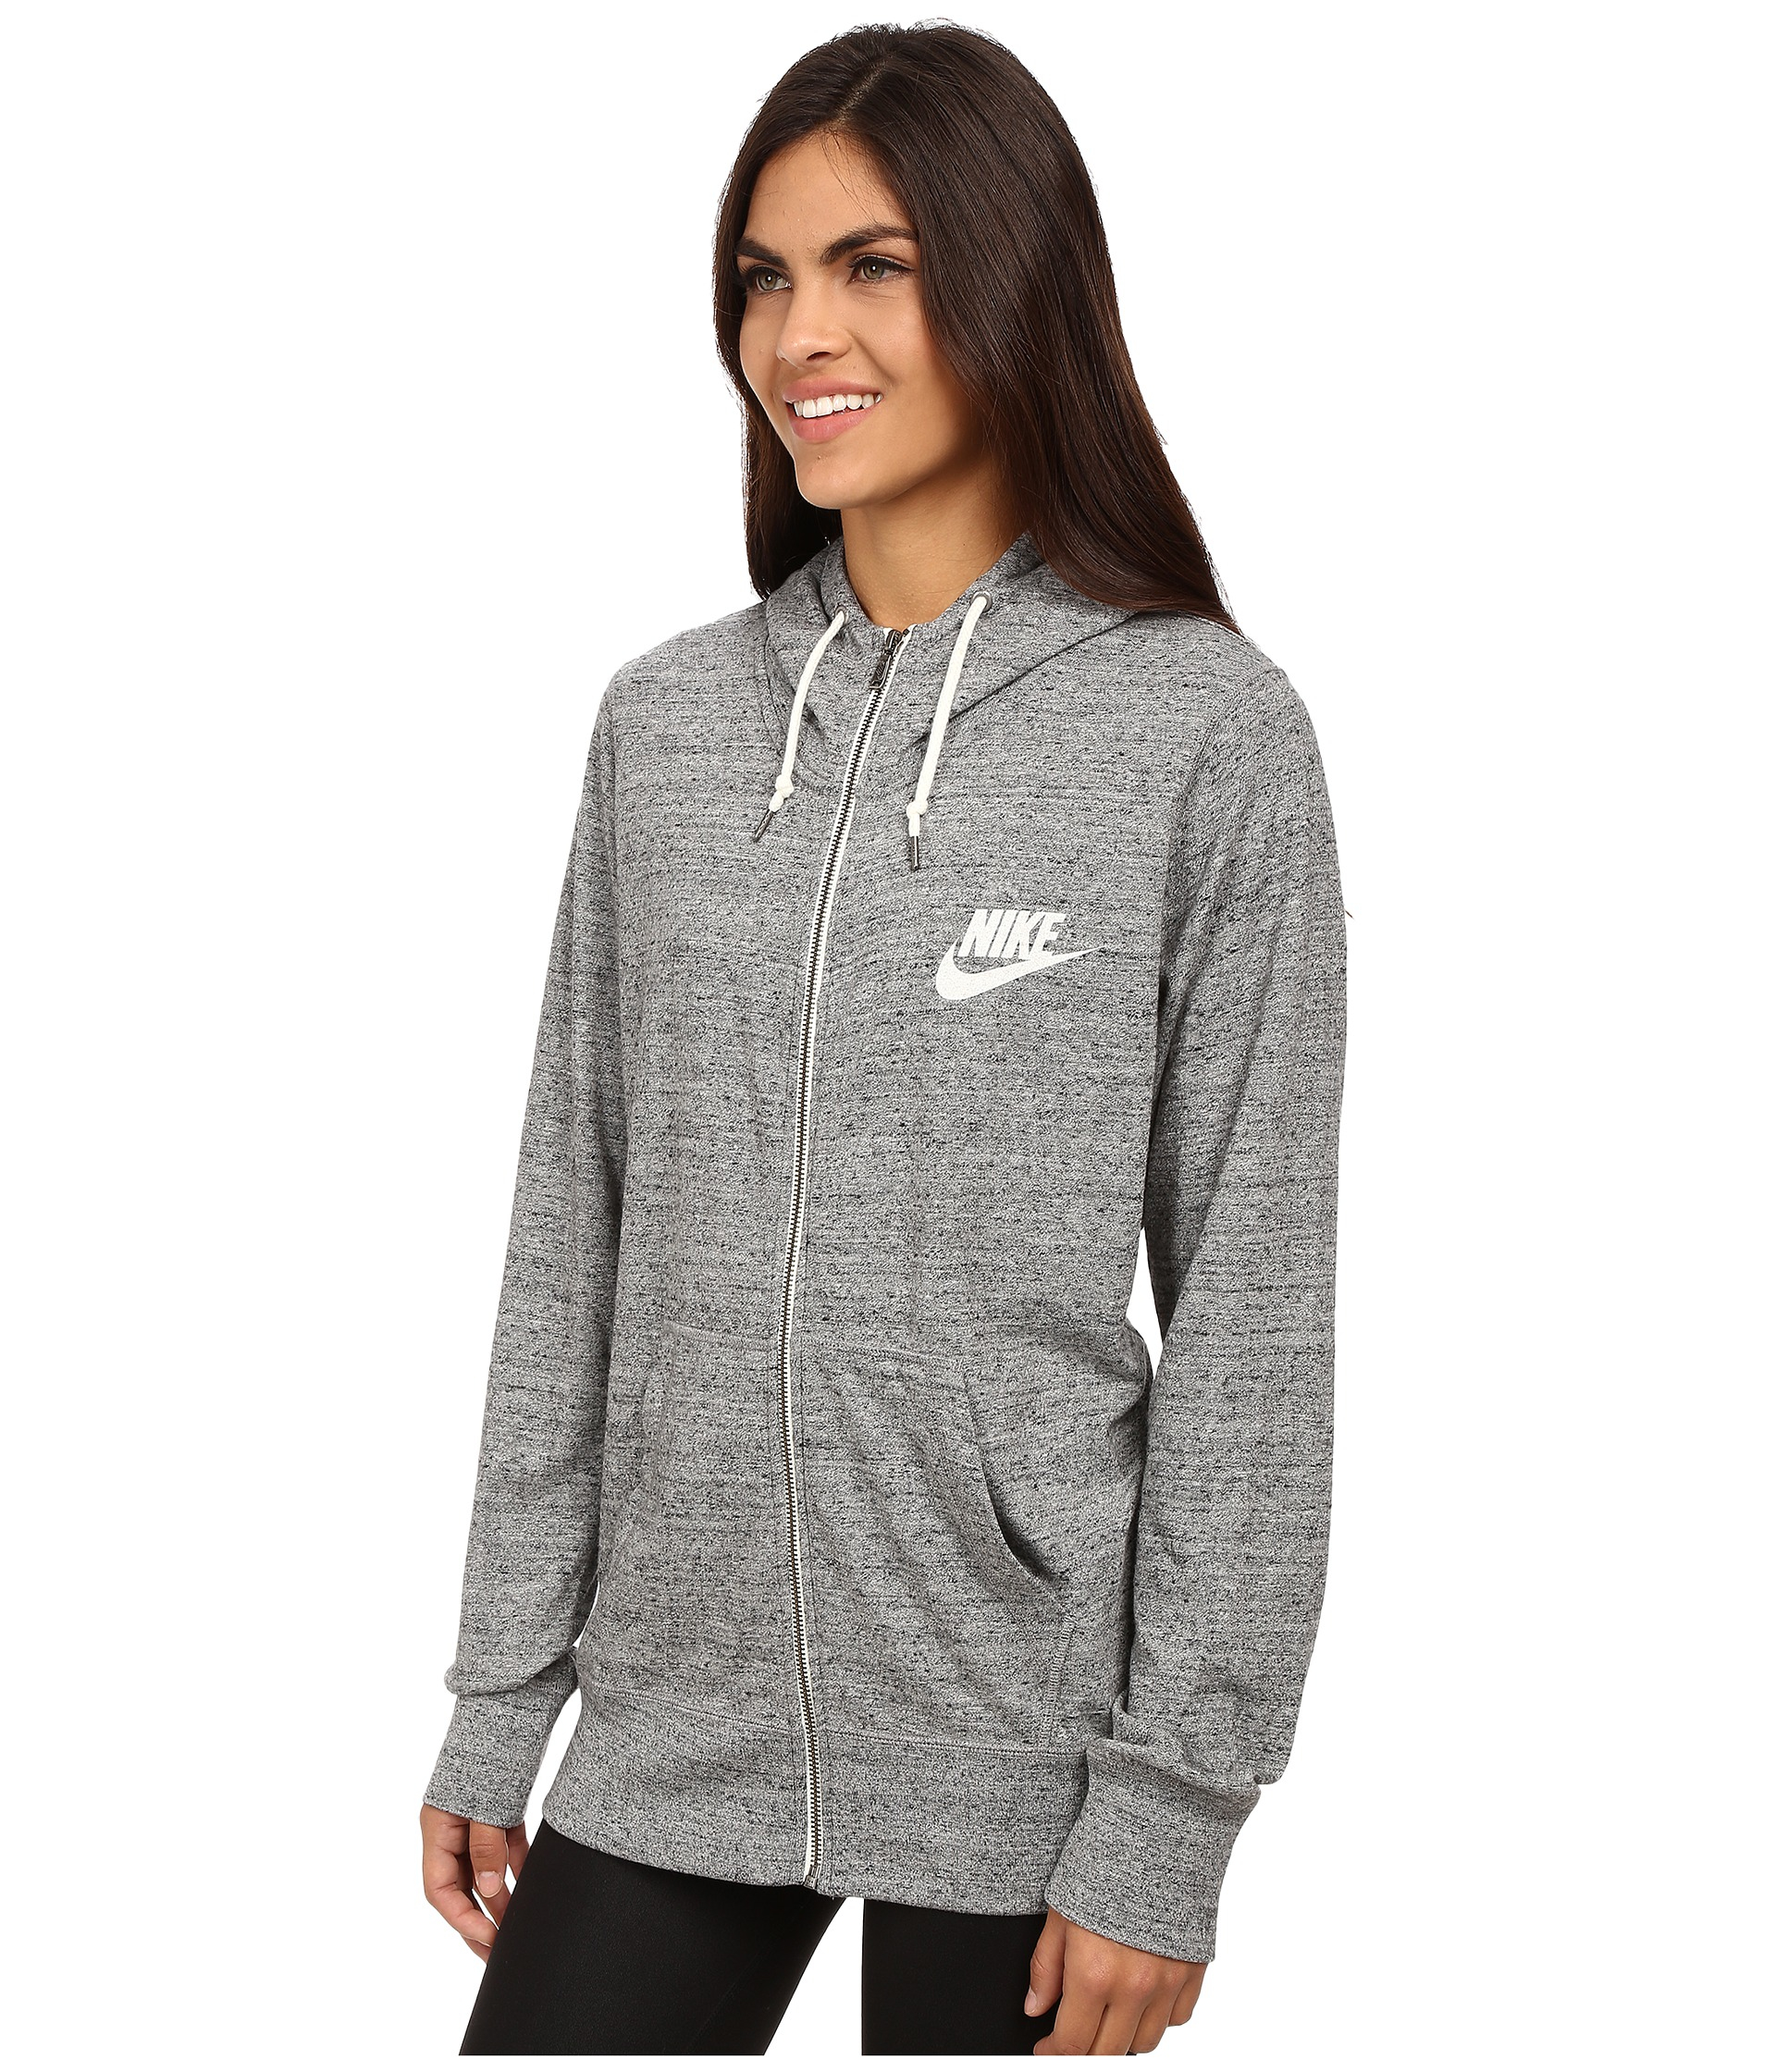 6ae62a529c68 Lyst - Nike Gym Vintage Full-zip Hoodie in Black